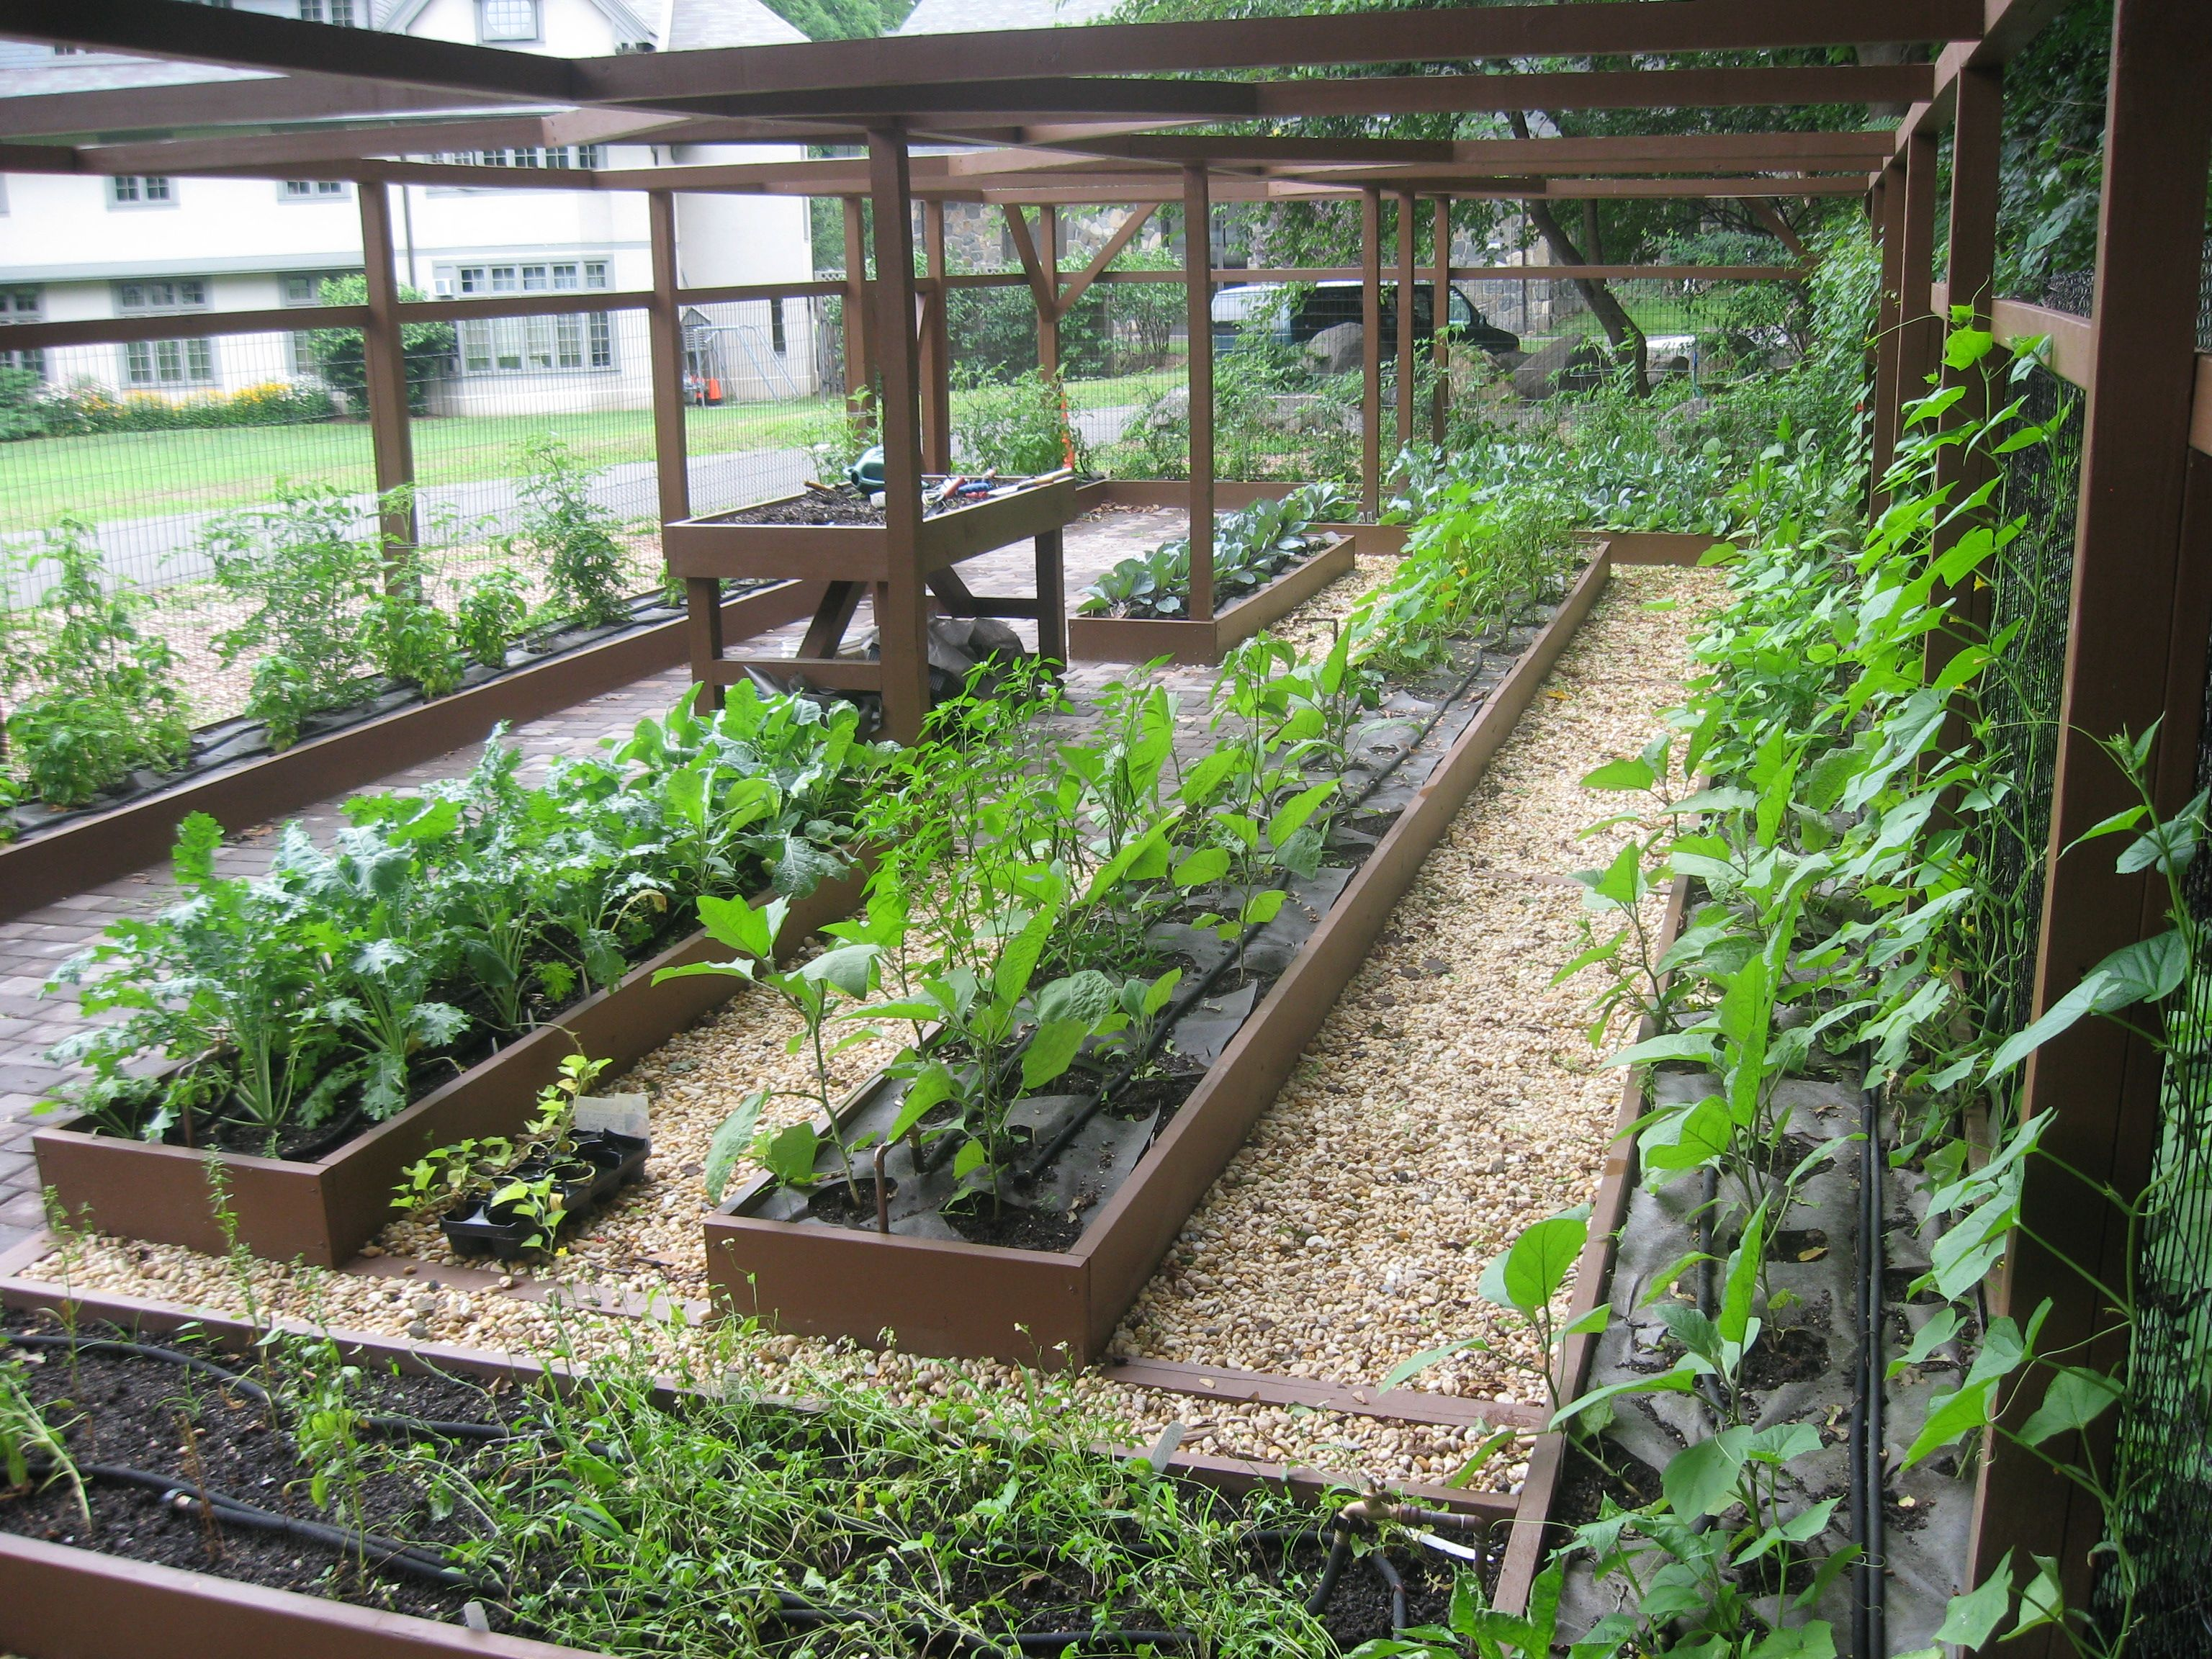 Vegetable Garden Ideas modern edibles Find This Pin And More On Micro Farms Urban Farms Edible Gardens Fruit And Vegetable Gardens